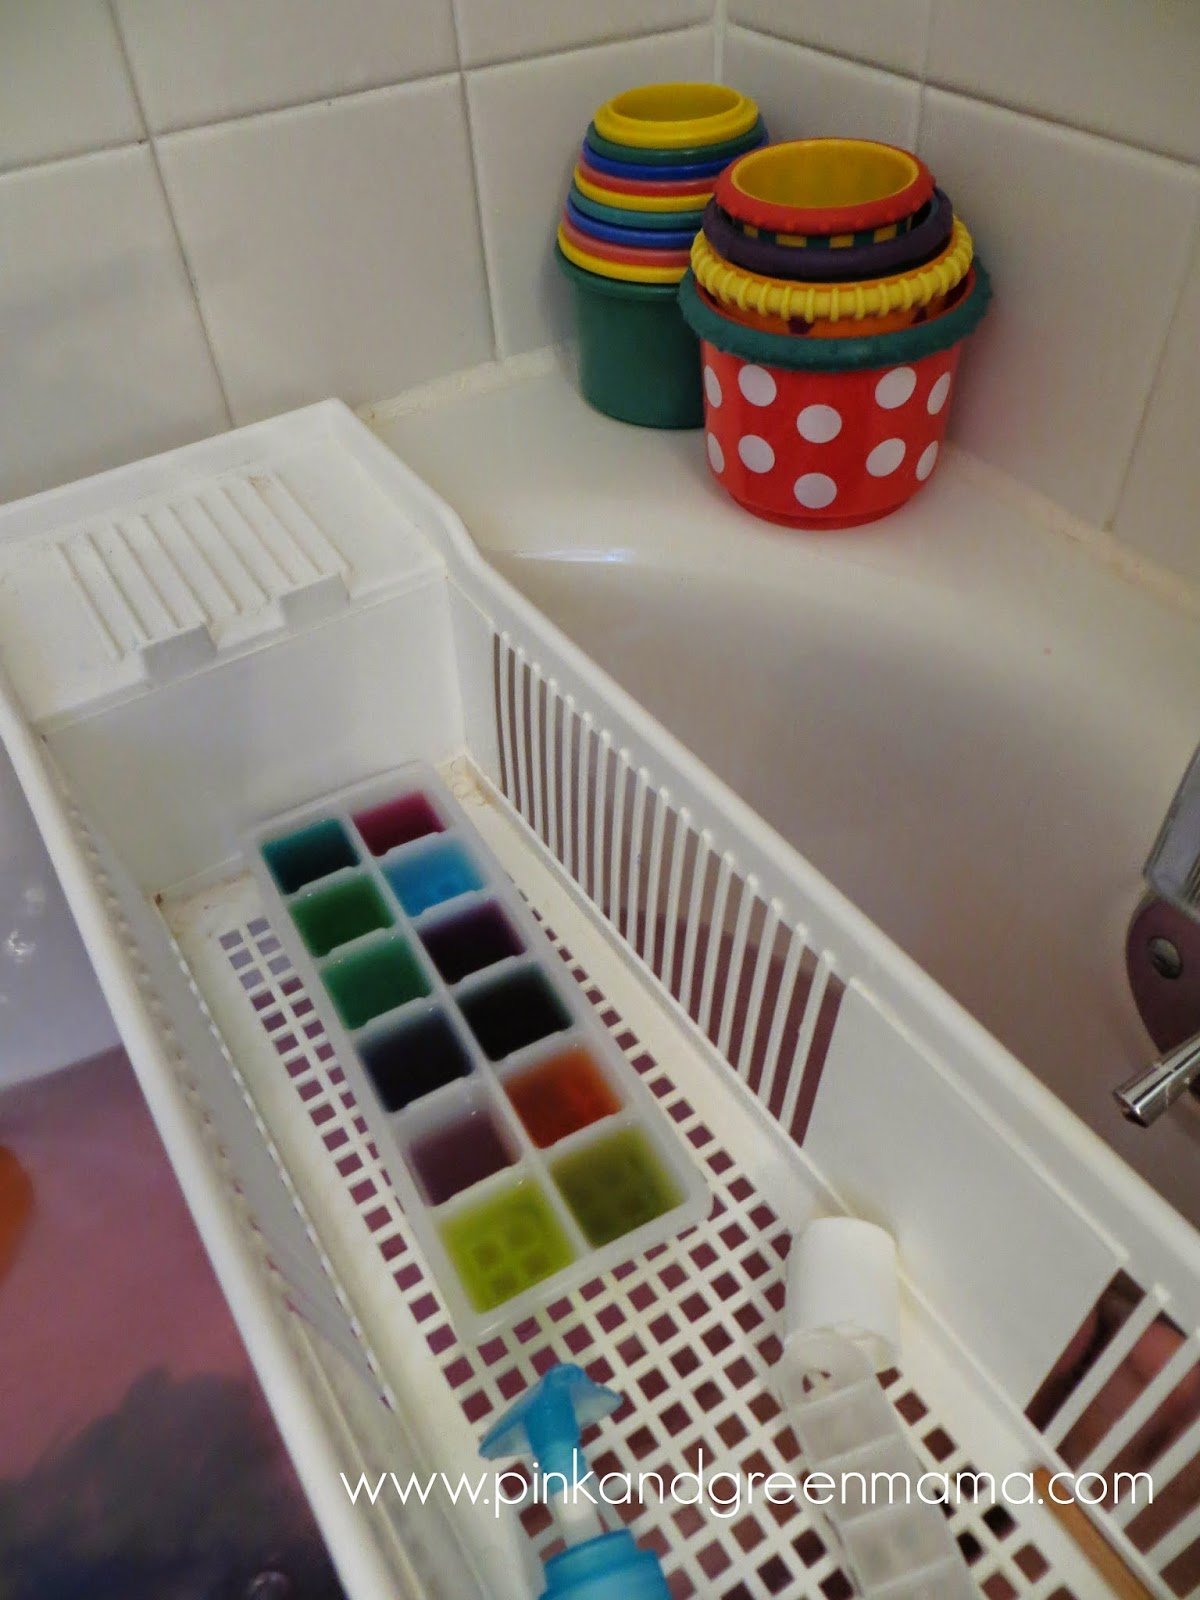 Pink and Green Mama: Color Mixing Fun in the Bathtub!